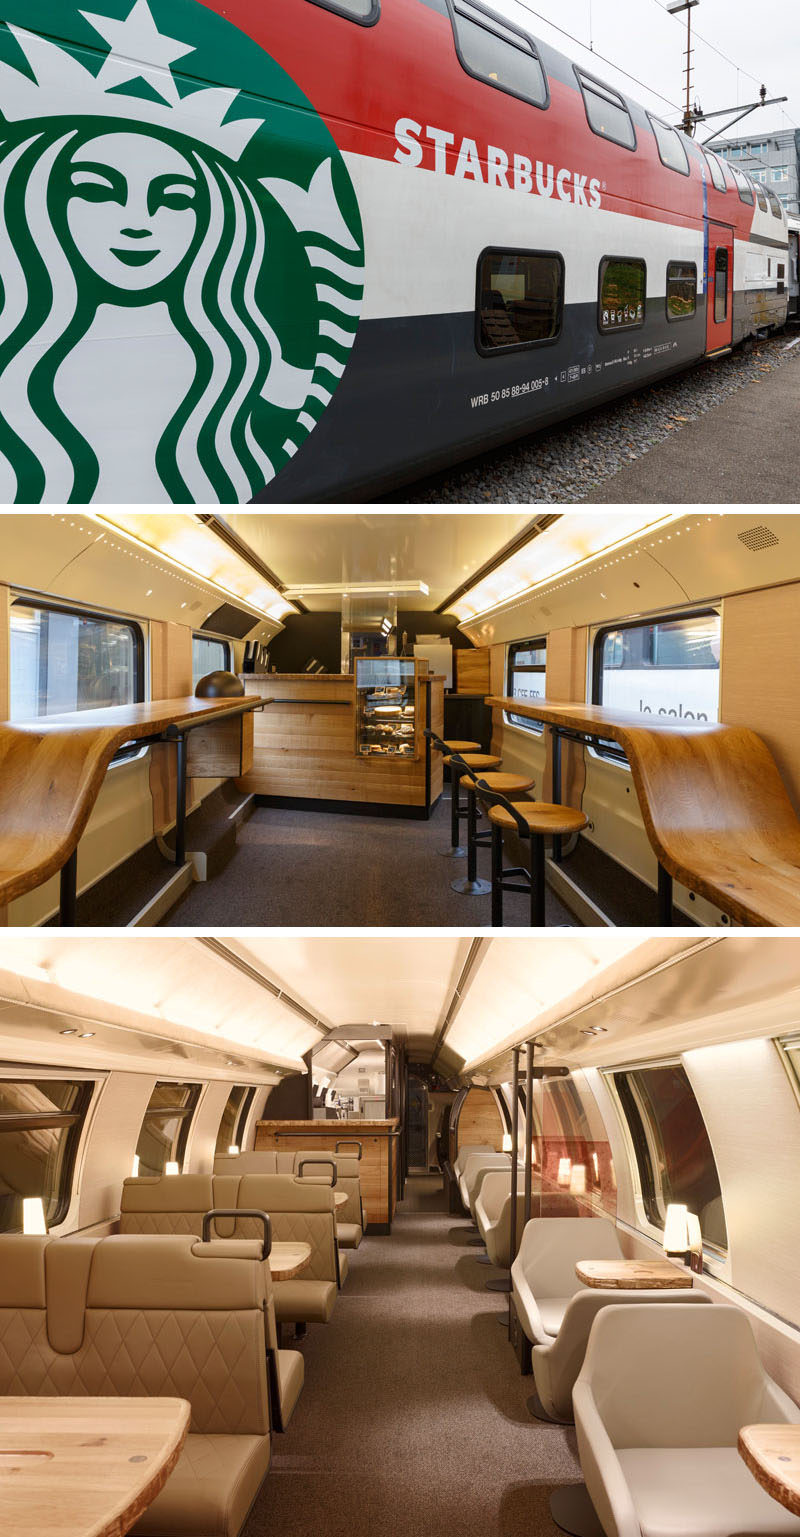 11 Starbucks Coffee Shops From Around The World // The luxury of train travel gets even more luxurious with the addition of a double-decker Starbucks car, that features a walk up bar complete with a small food display as well as an upstairs in which train riders can order their food and coffee from the comfort of their padded leather seats.